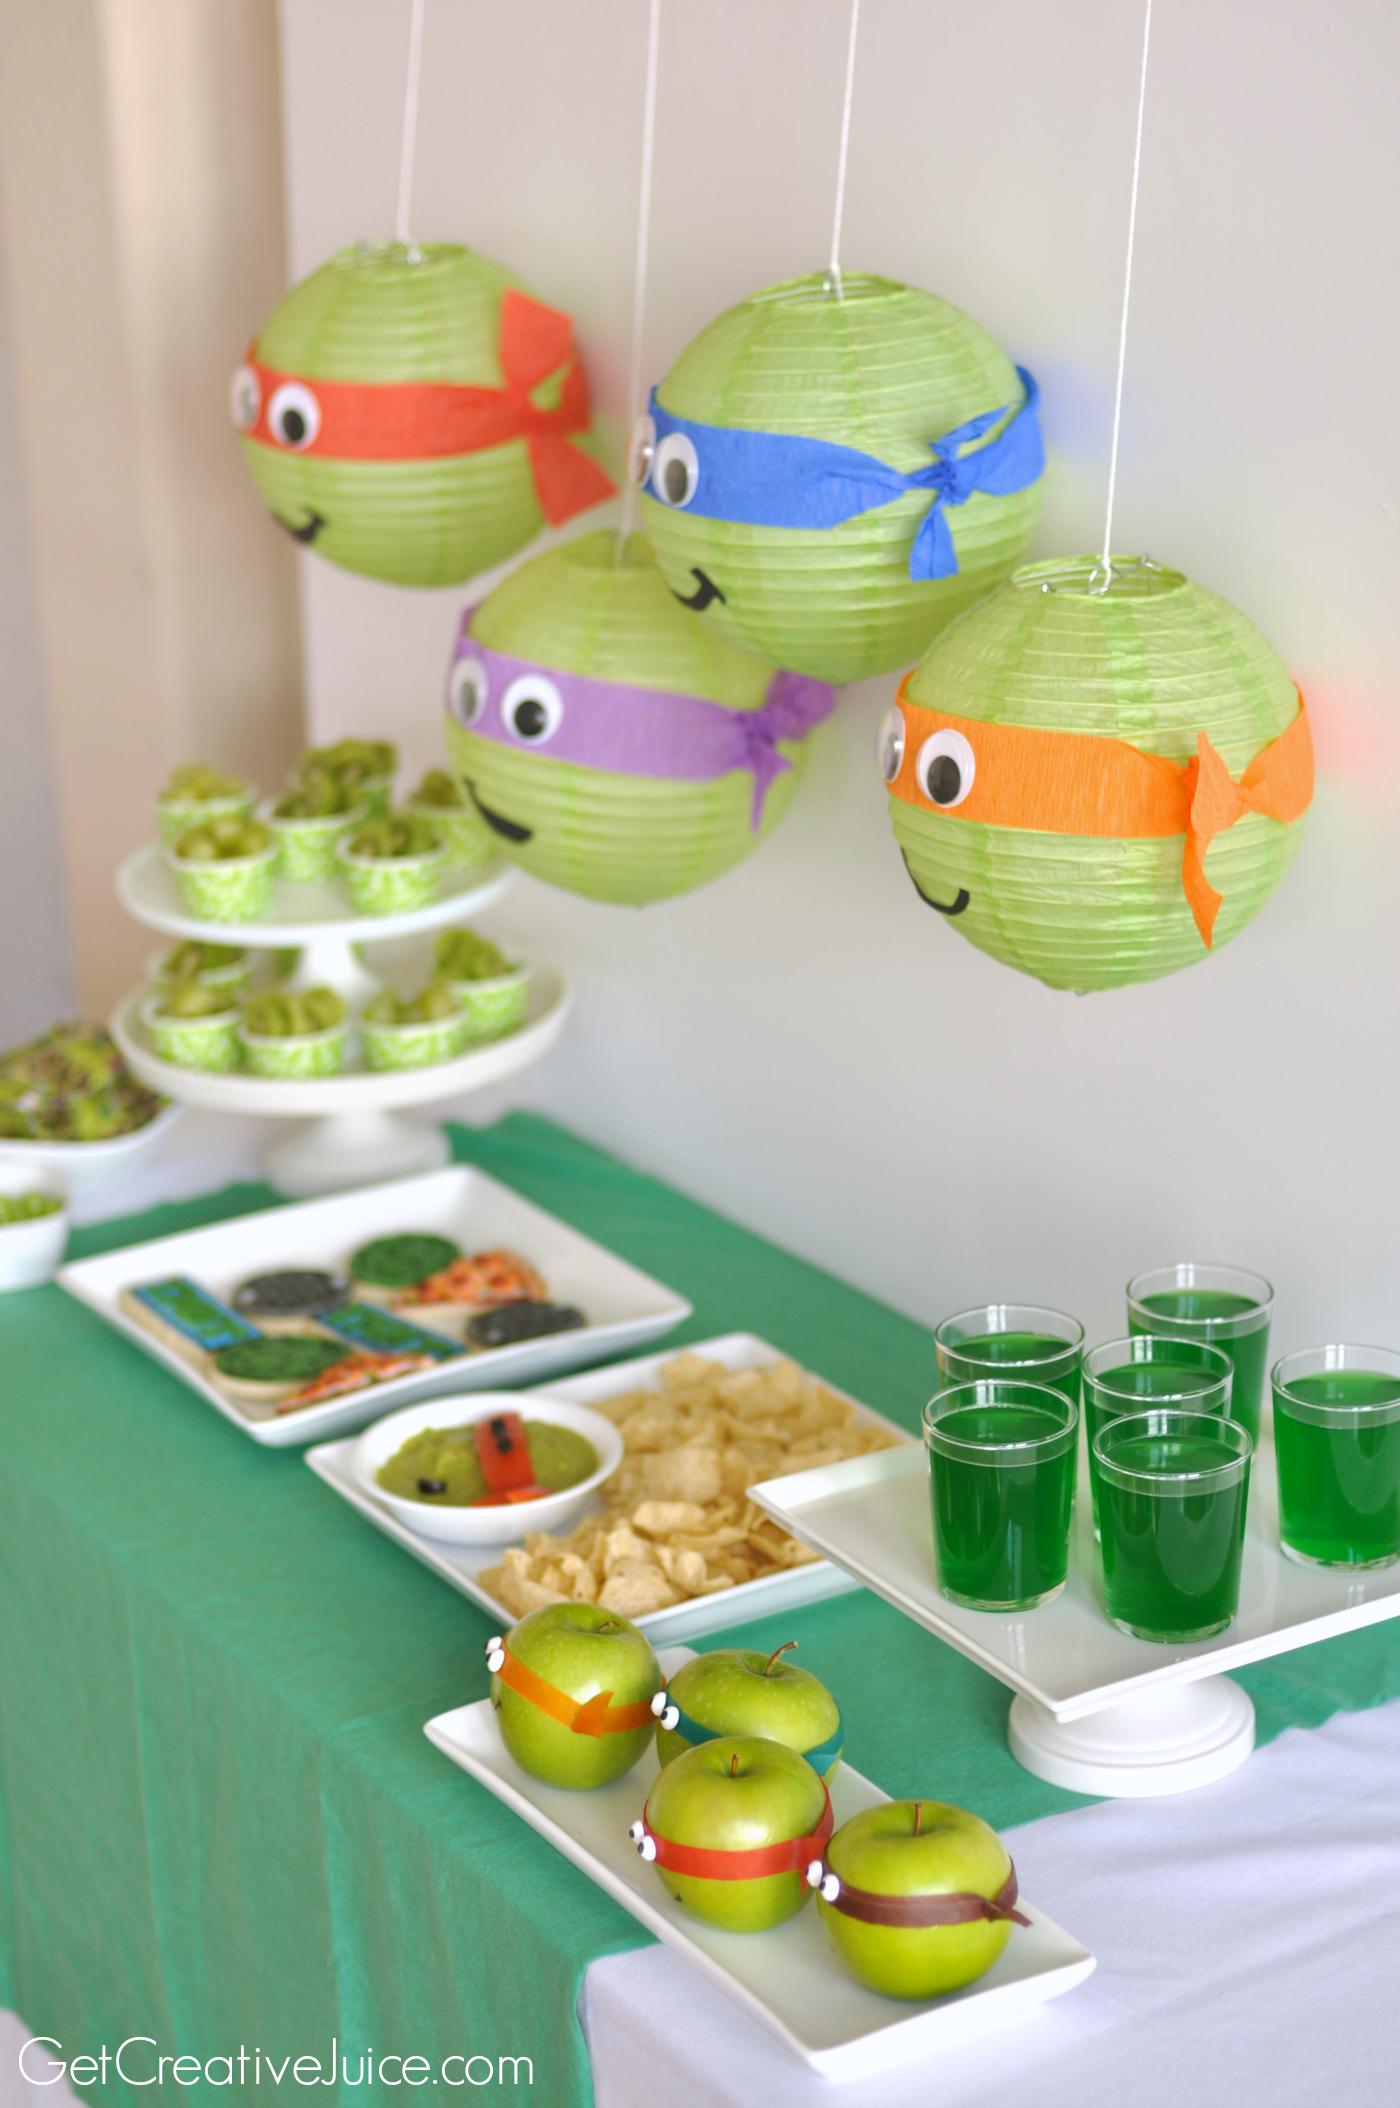 Tmnt party creative juice for Tmnt decorations